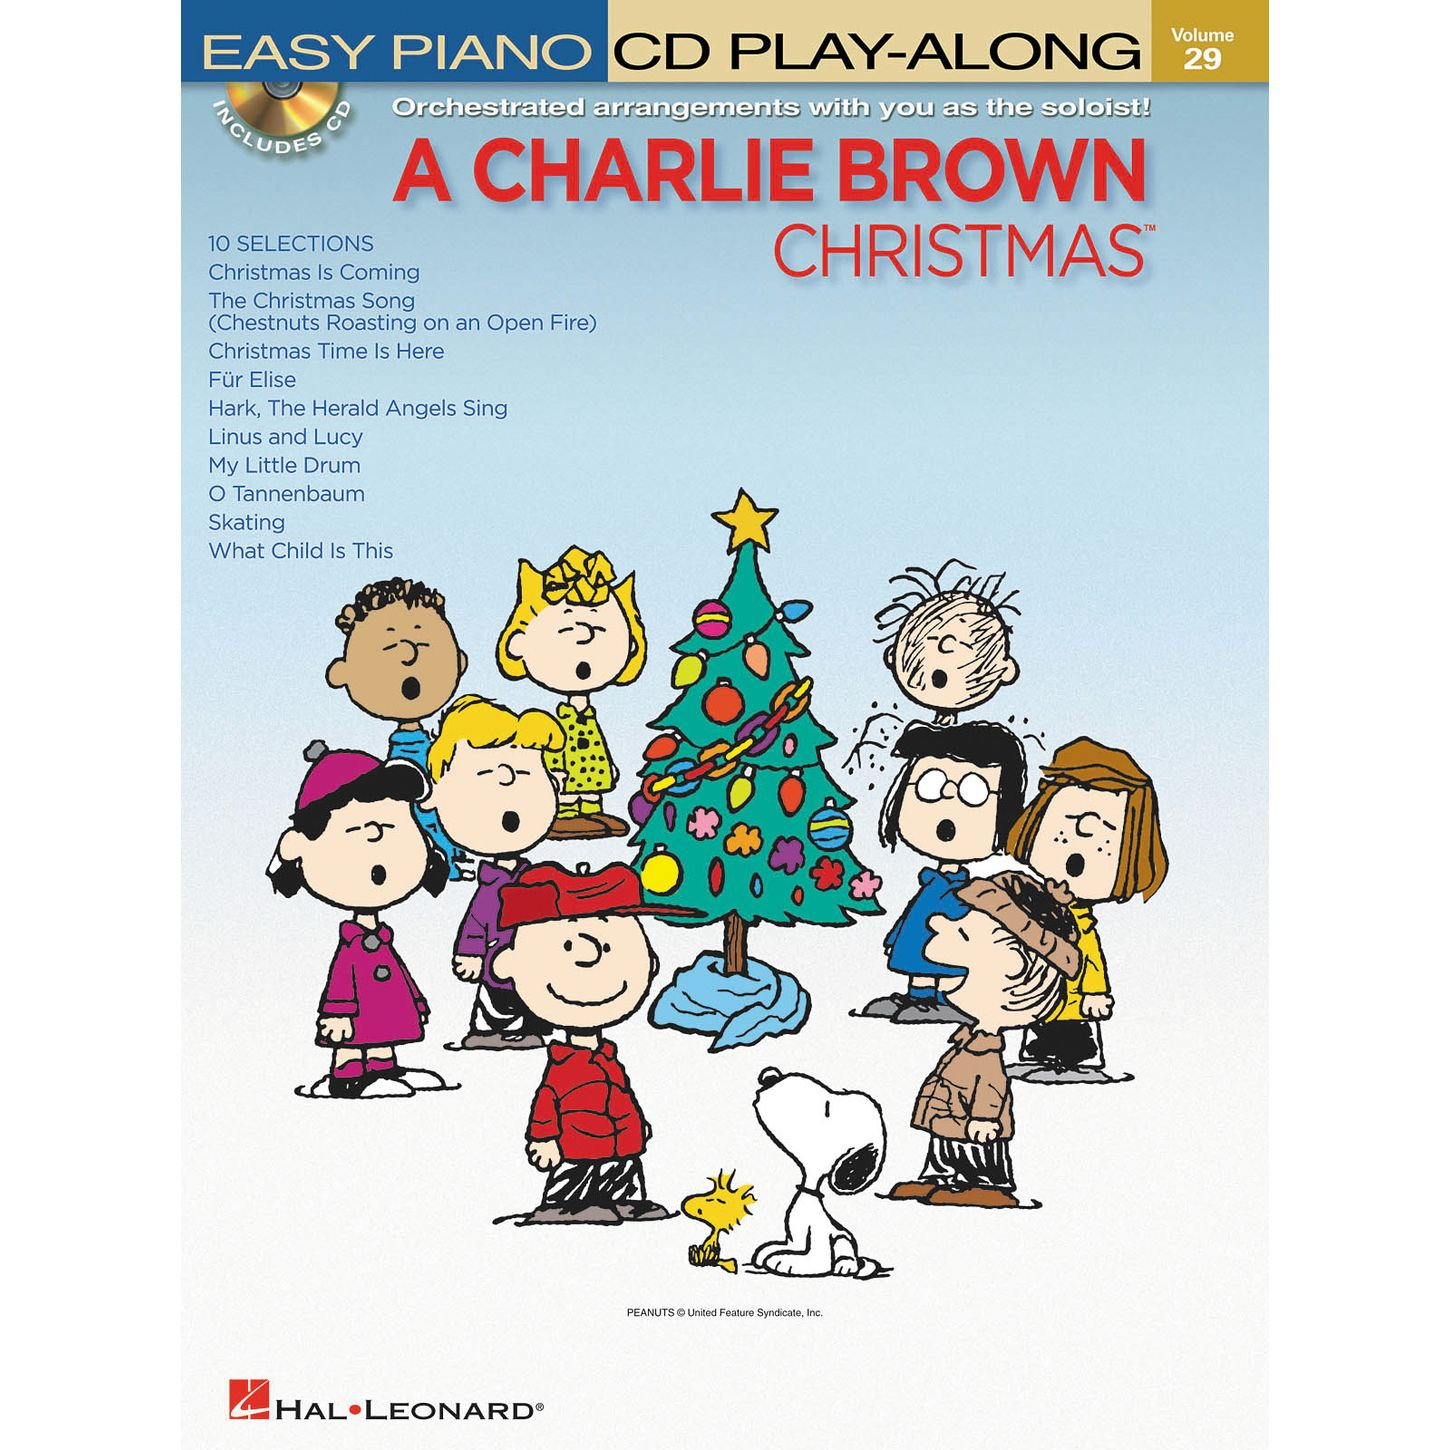 Charlie Brown Christmas Sheet Music Pictures Wallpapers